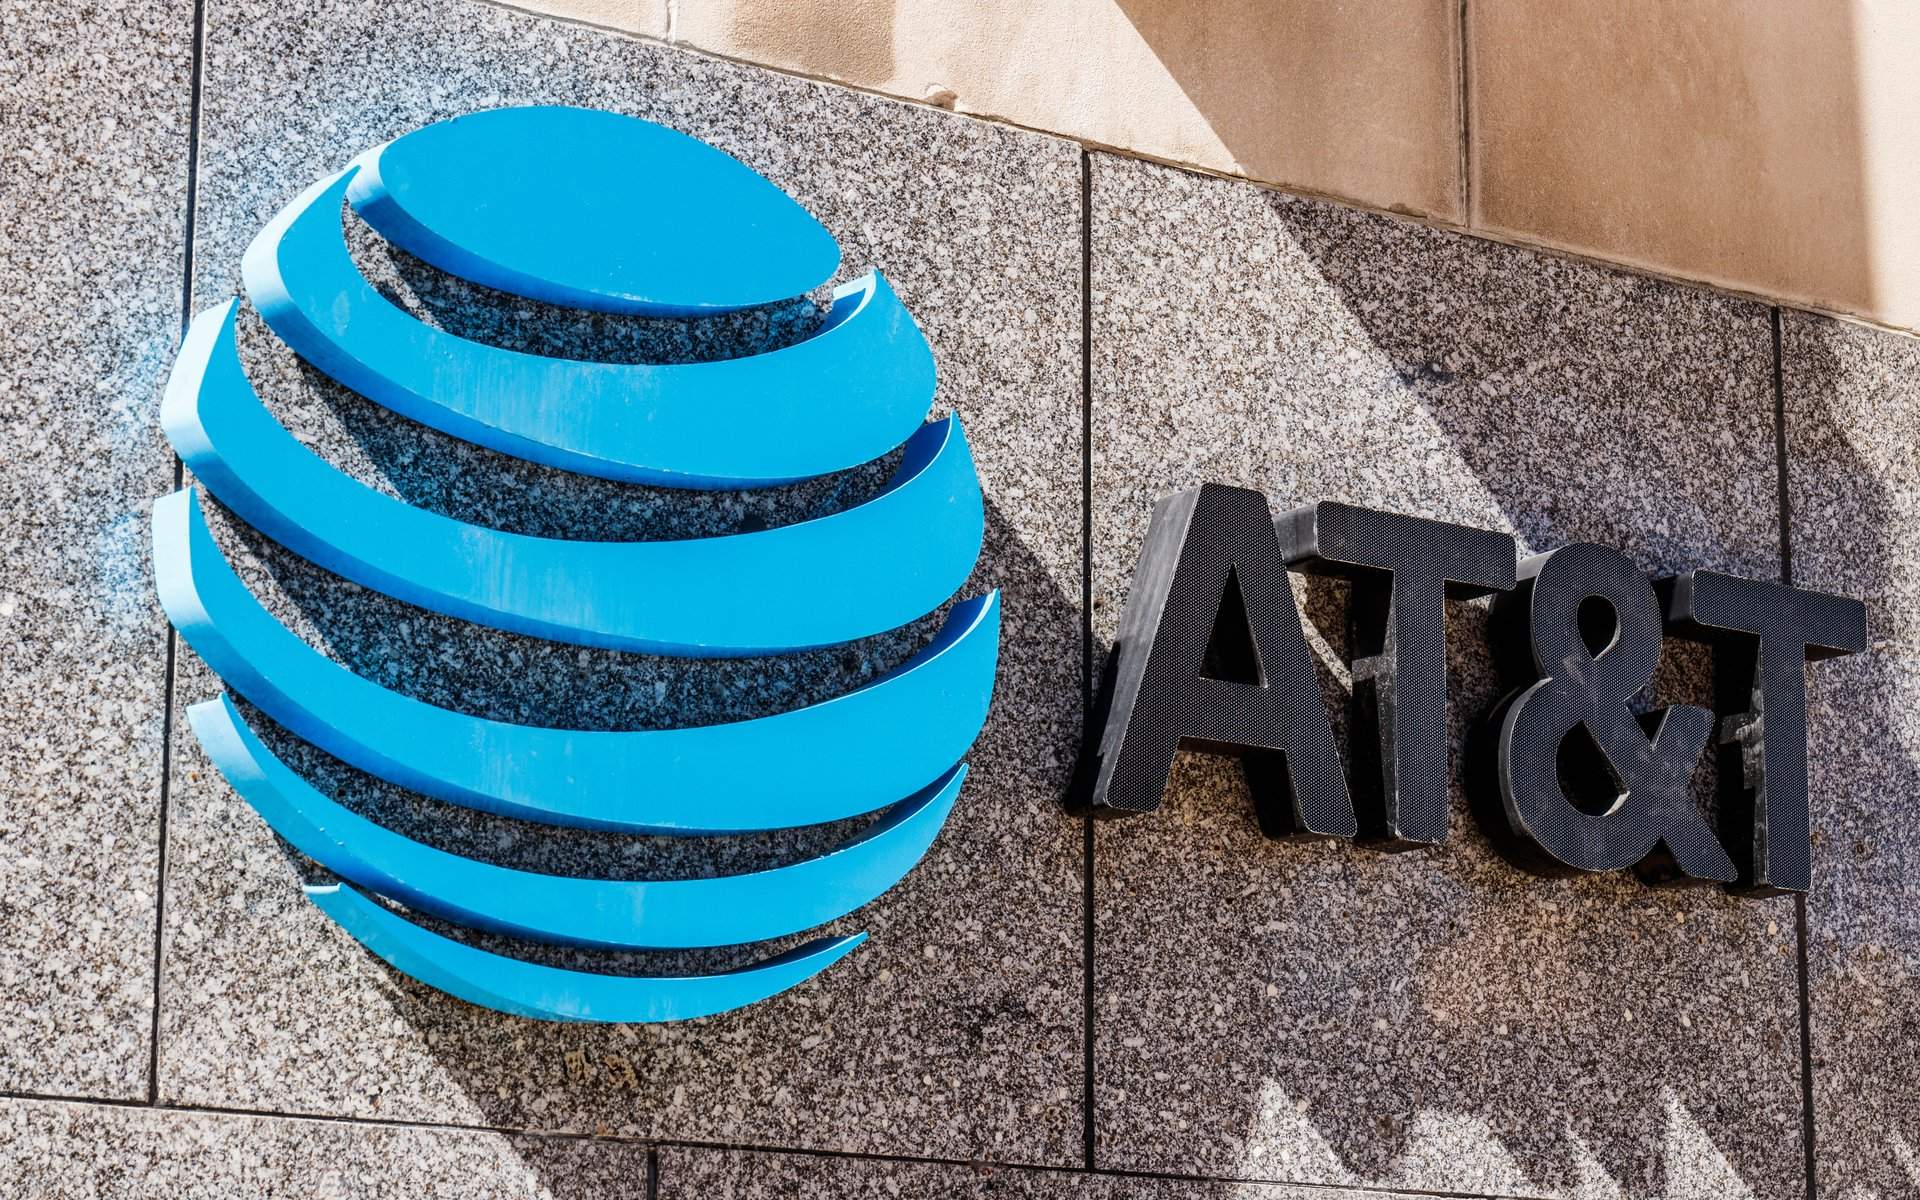 US Investor Files Lawsuit Against AT&T Over Cryptocurrency Theft